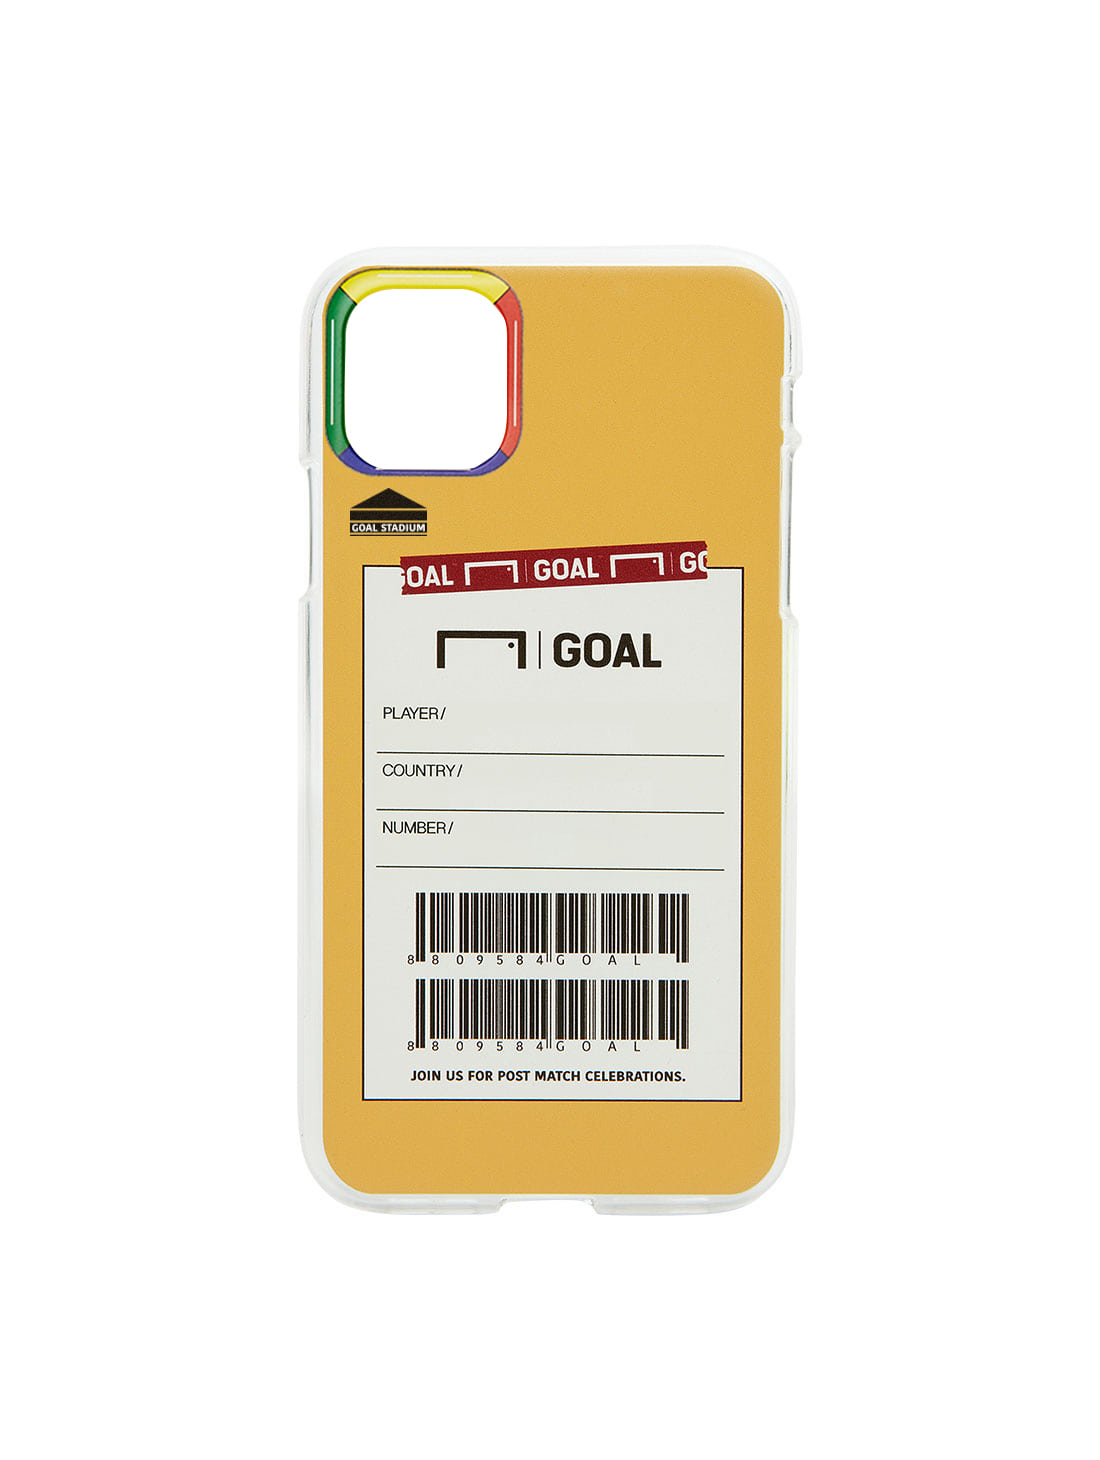 GOALSTUDIO CUSTOM PHONECASE - ORANGE(iPhone)